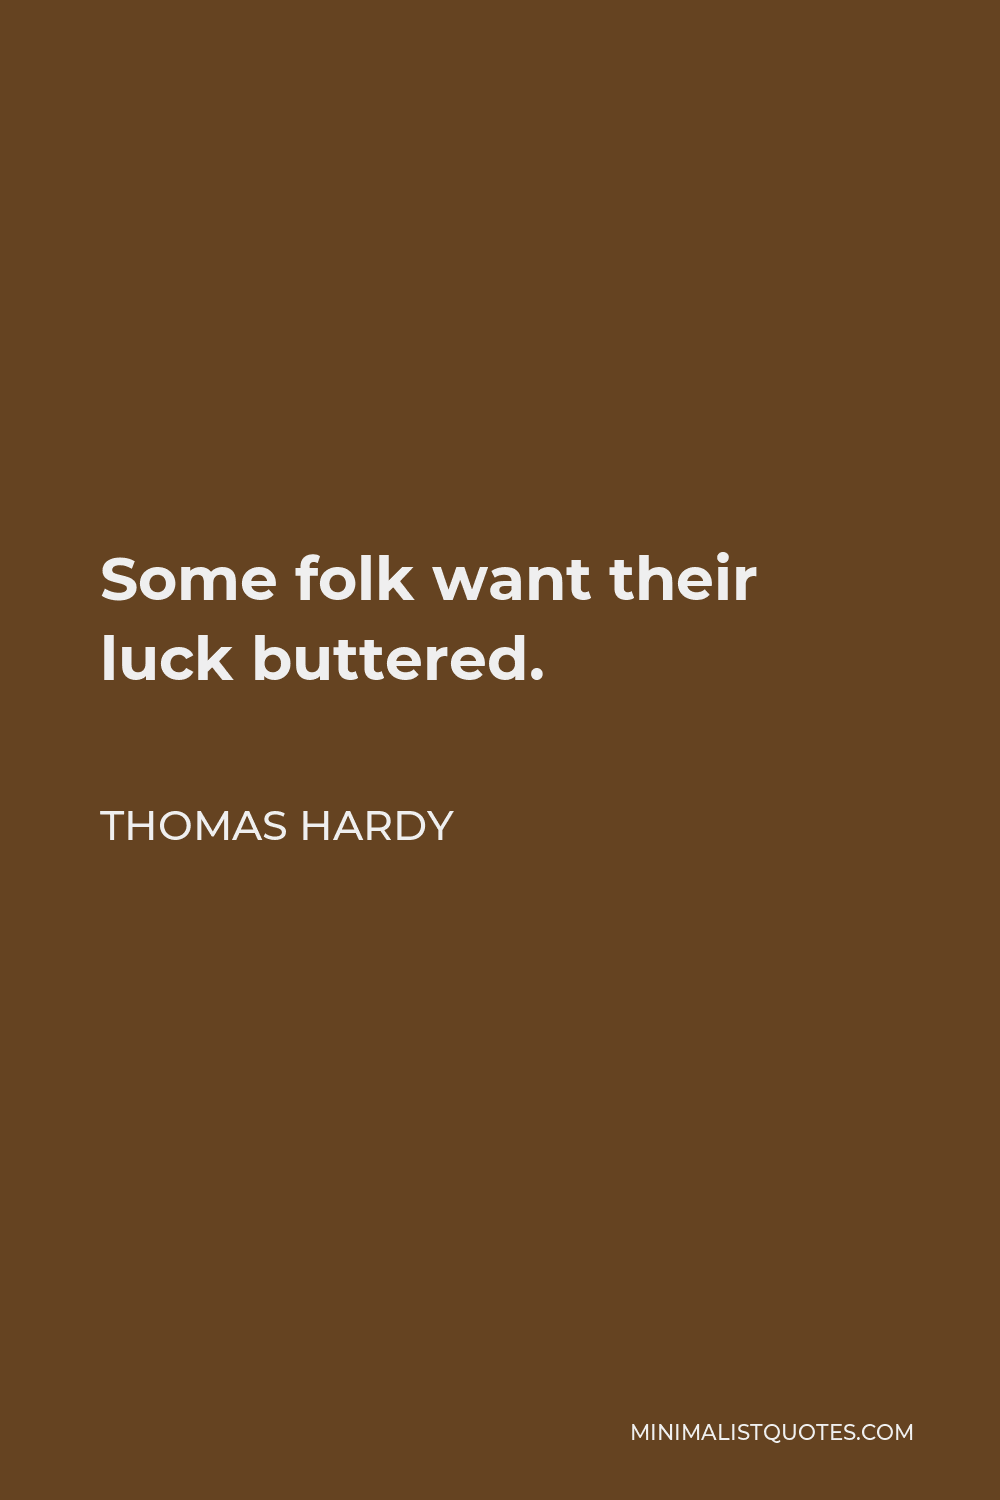 Thomas Hardy Quote - Some folk want their luck buttered.